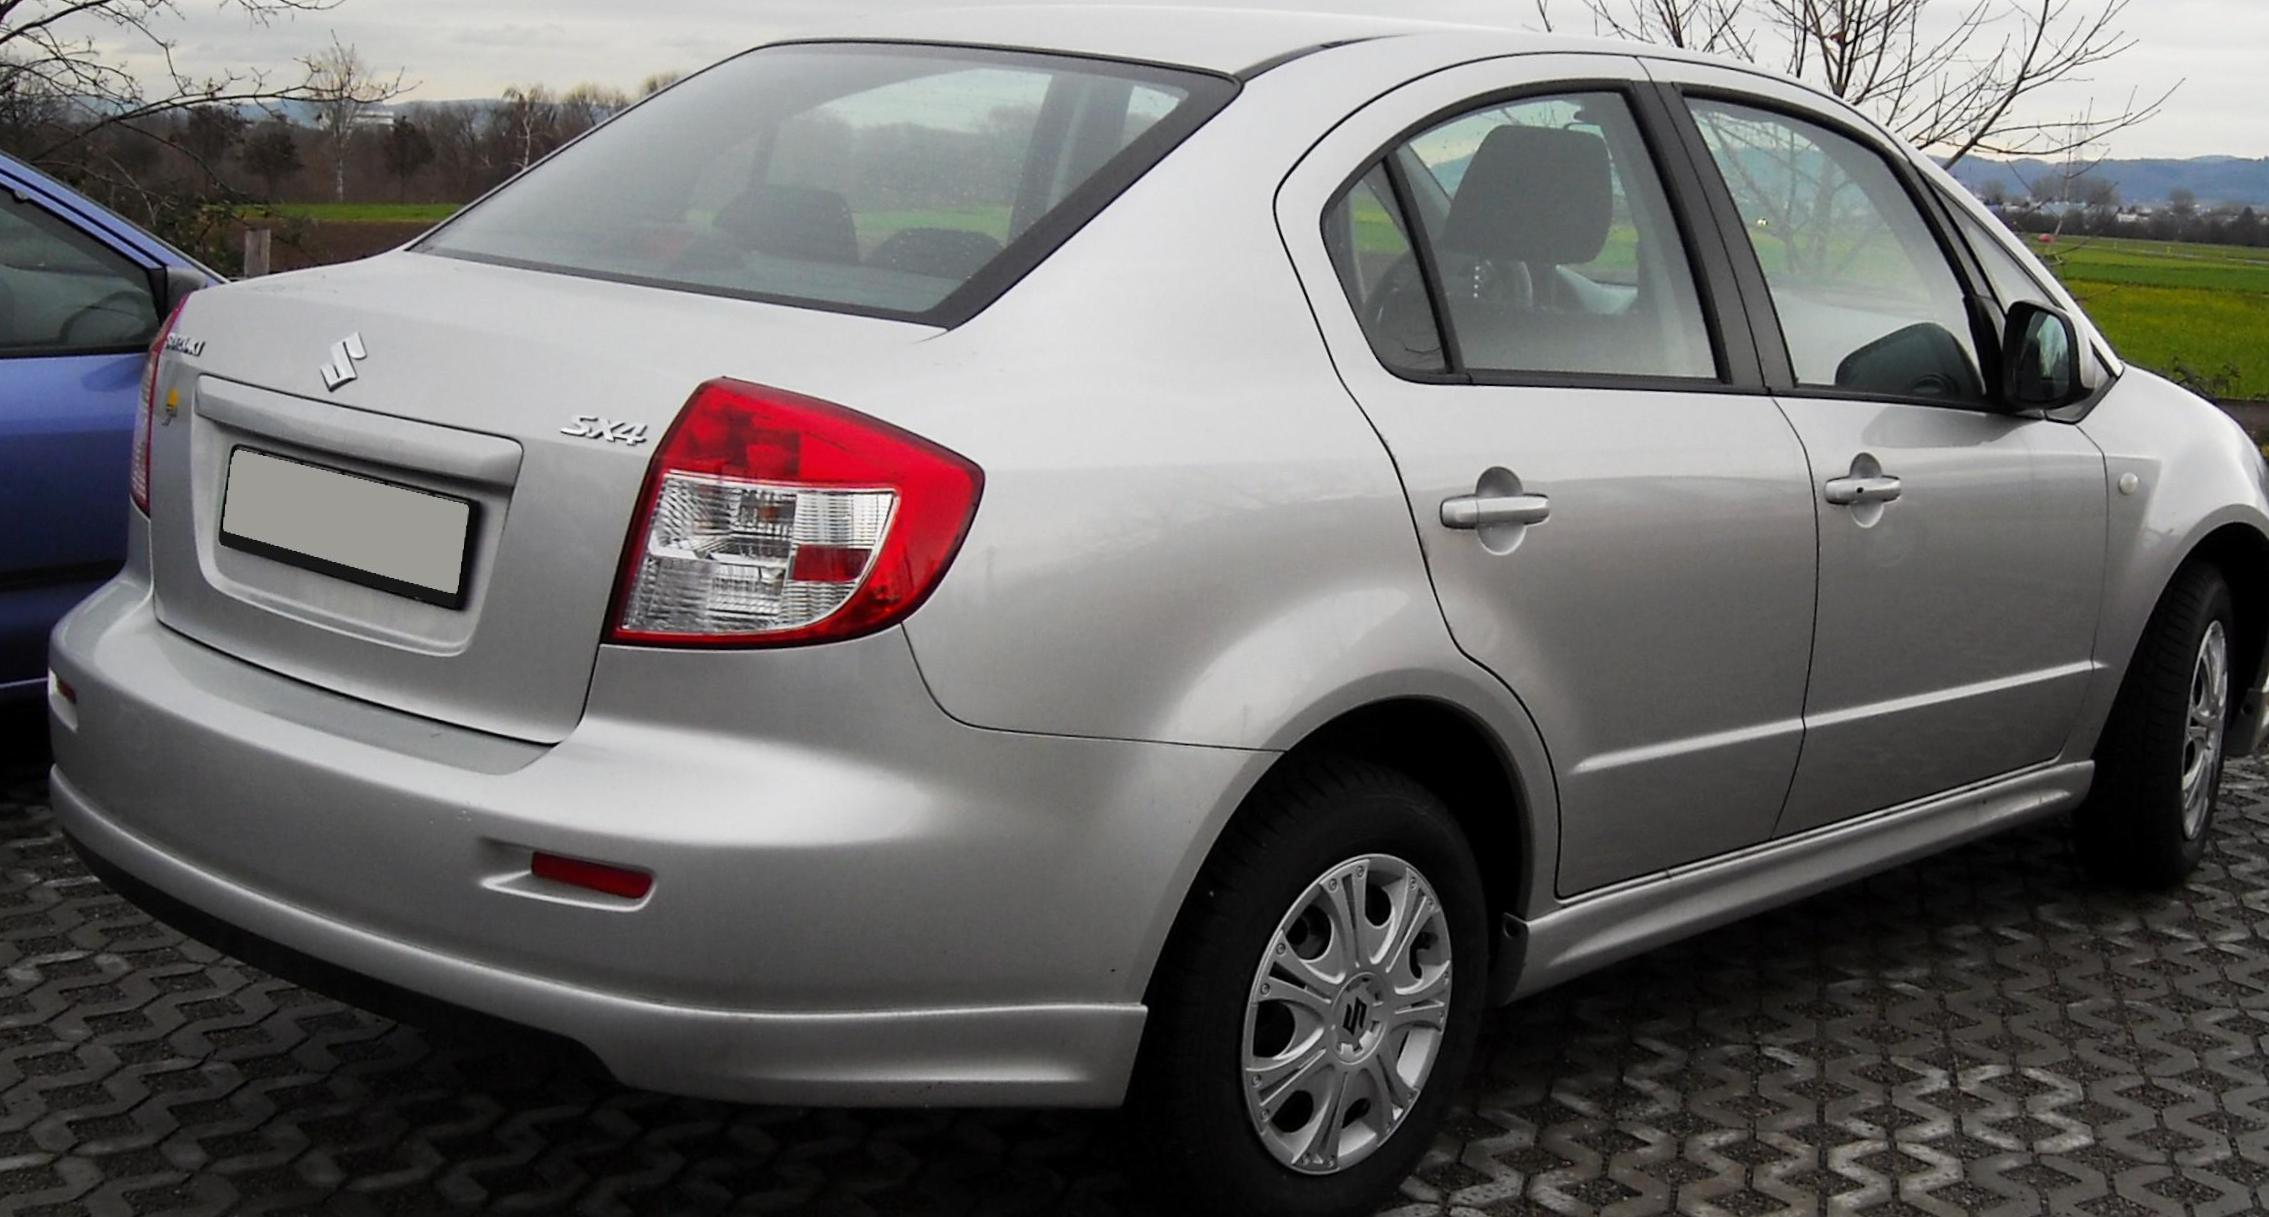 Suzuki SX4 Urban parts sedan